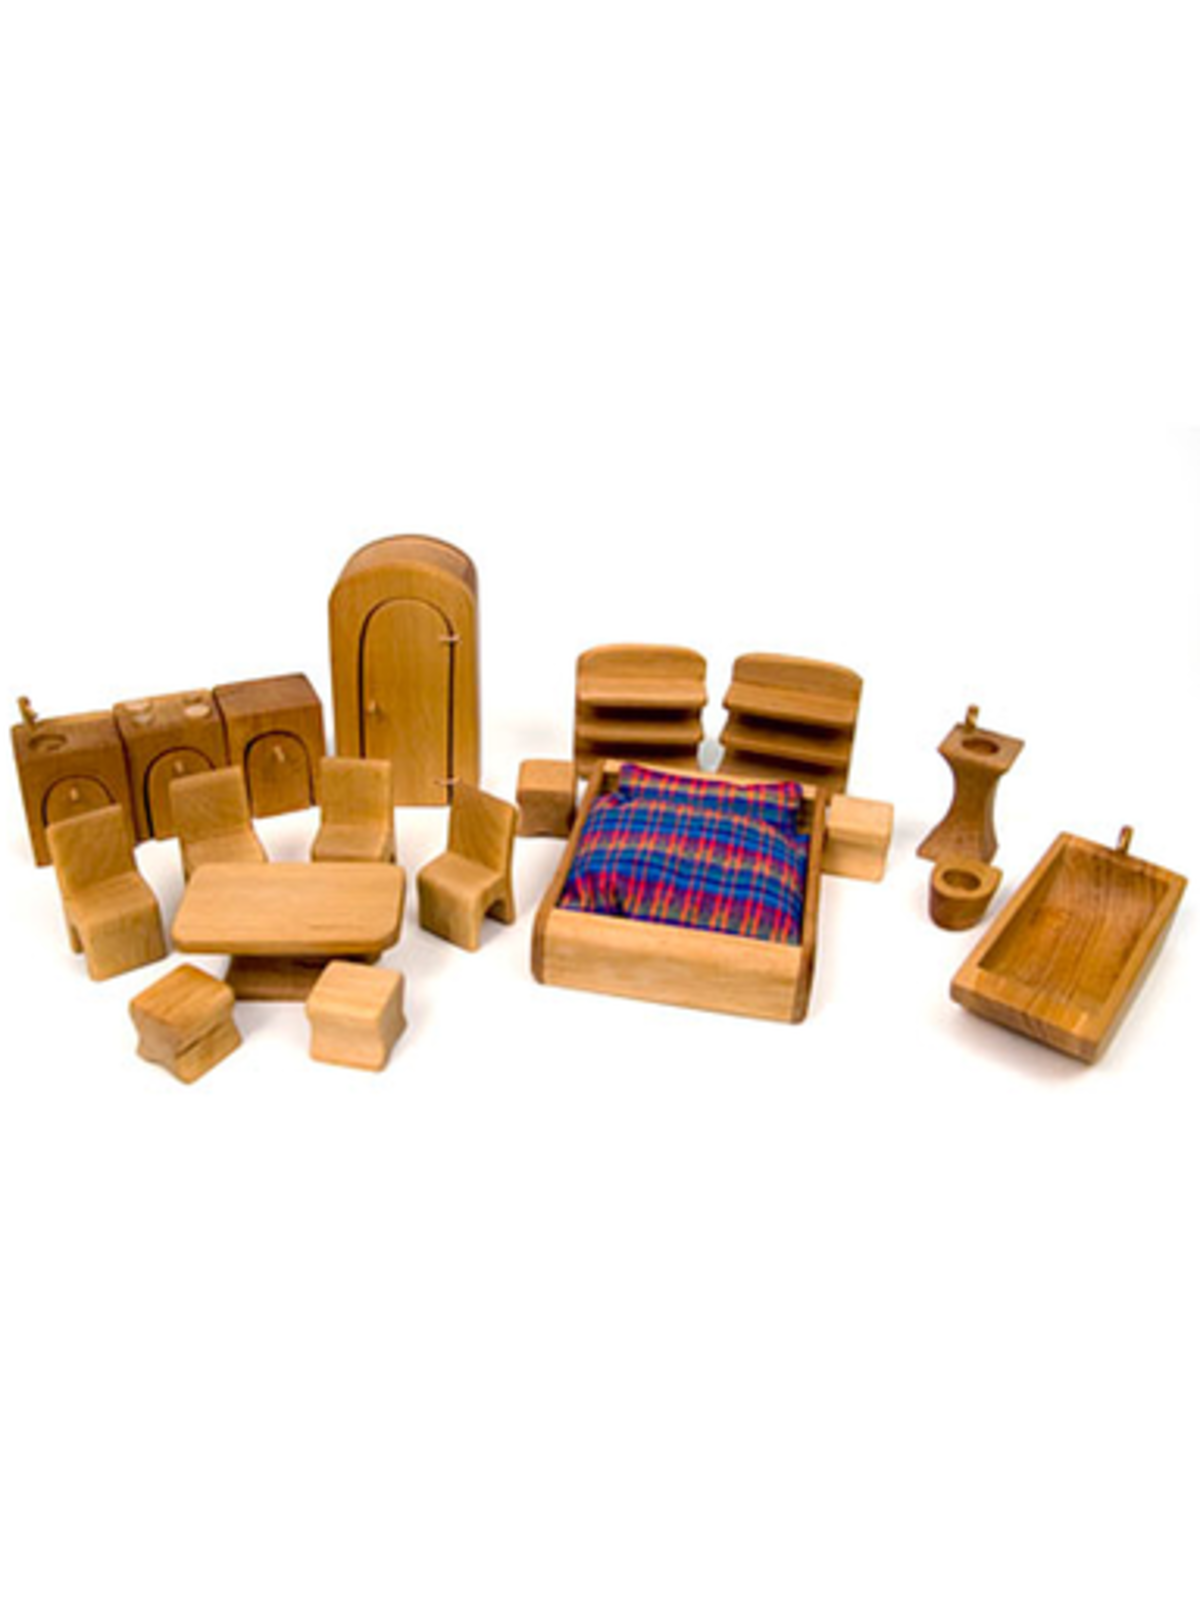 Norbert Verneuer Wooden Dollhouse Furniture Set 19 Pieces Norman Jules Garmentory